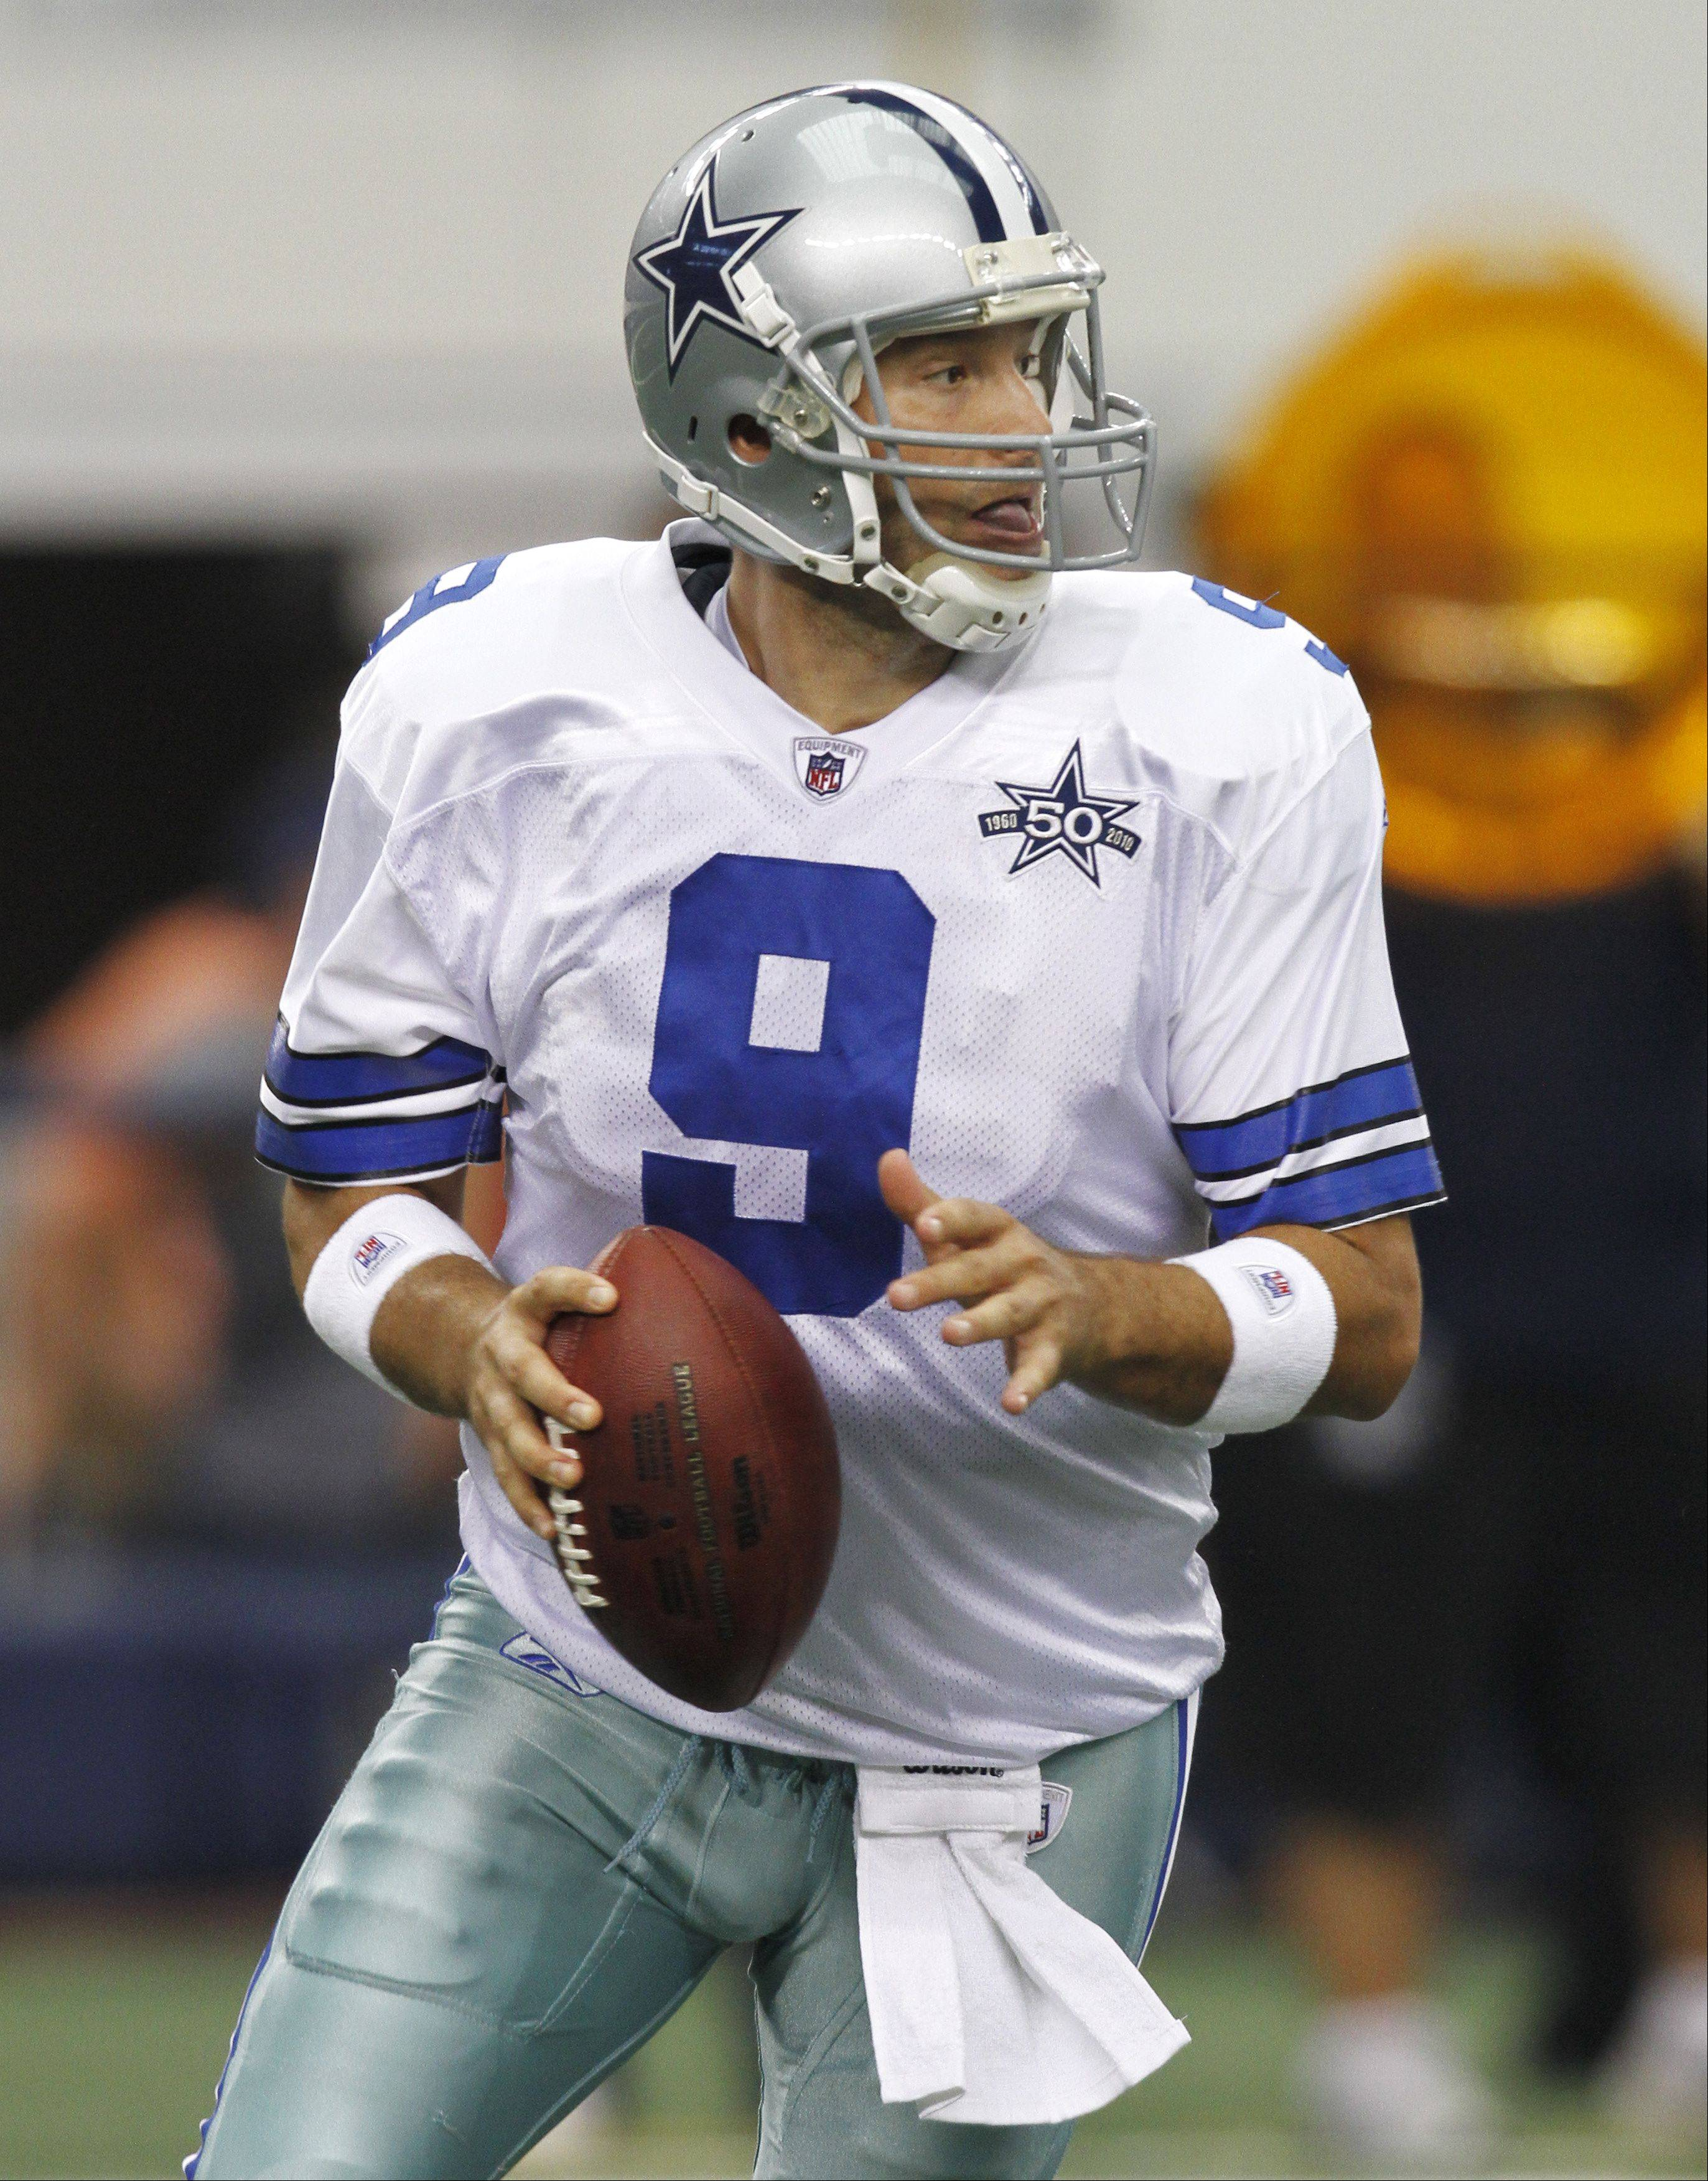 Dallas Cowboys quarterback Tony Romo (9) looks for an open receiver in the first half of an NFL football game against the Chicago Bears, Sunday, Sept. 19, 2010, in Arlington, Texas.